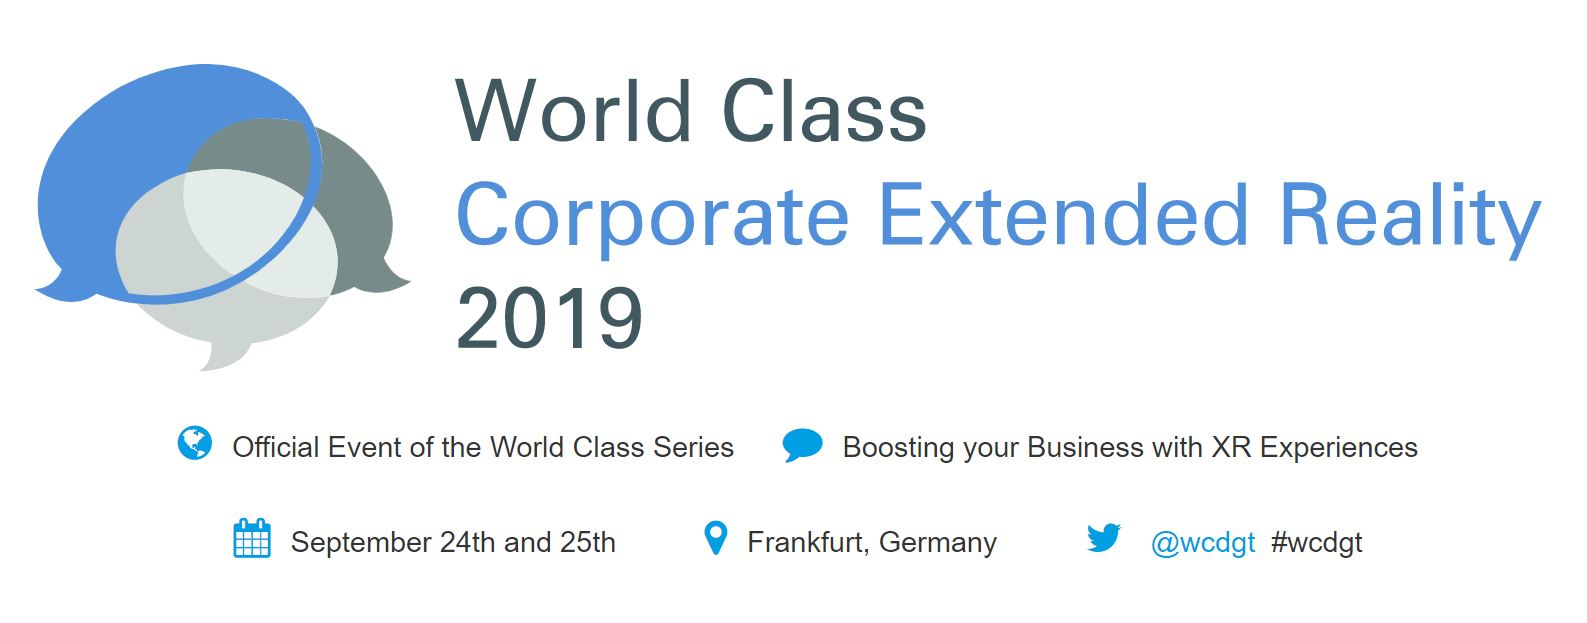 World Class Corporate Extended Reality 2019